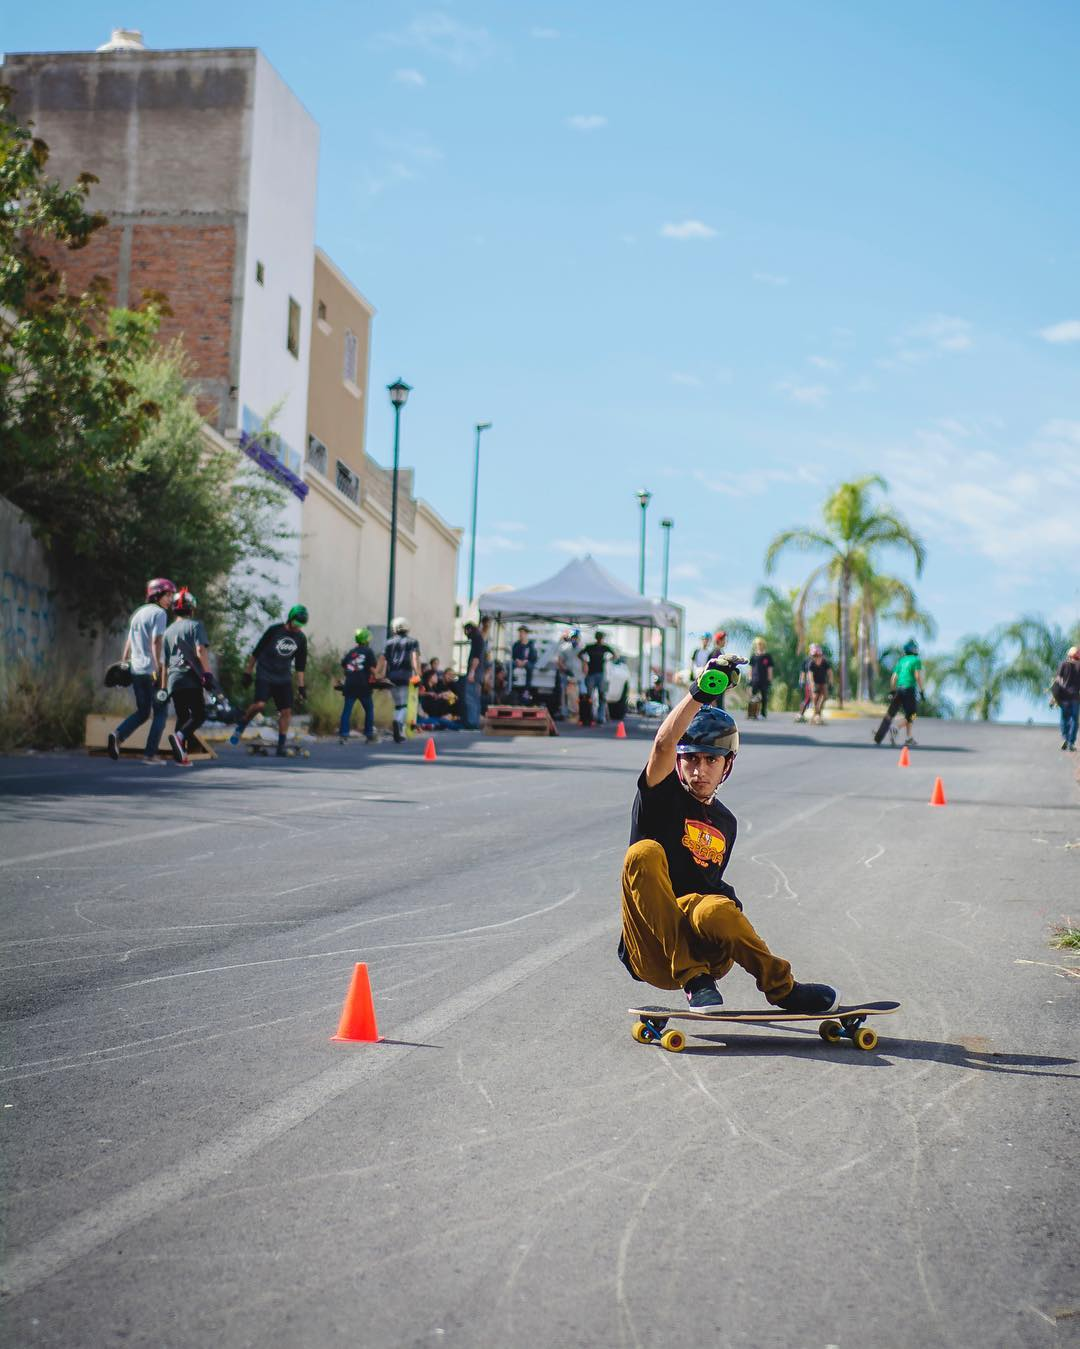 #OrangatangAmbassador @marcosandoval_lbd has been in Los Angeles for some days now.  Here's him sliding to avoid cones at a slide jam back home in Guadalajara.